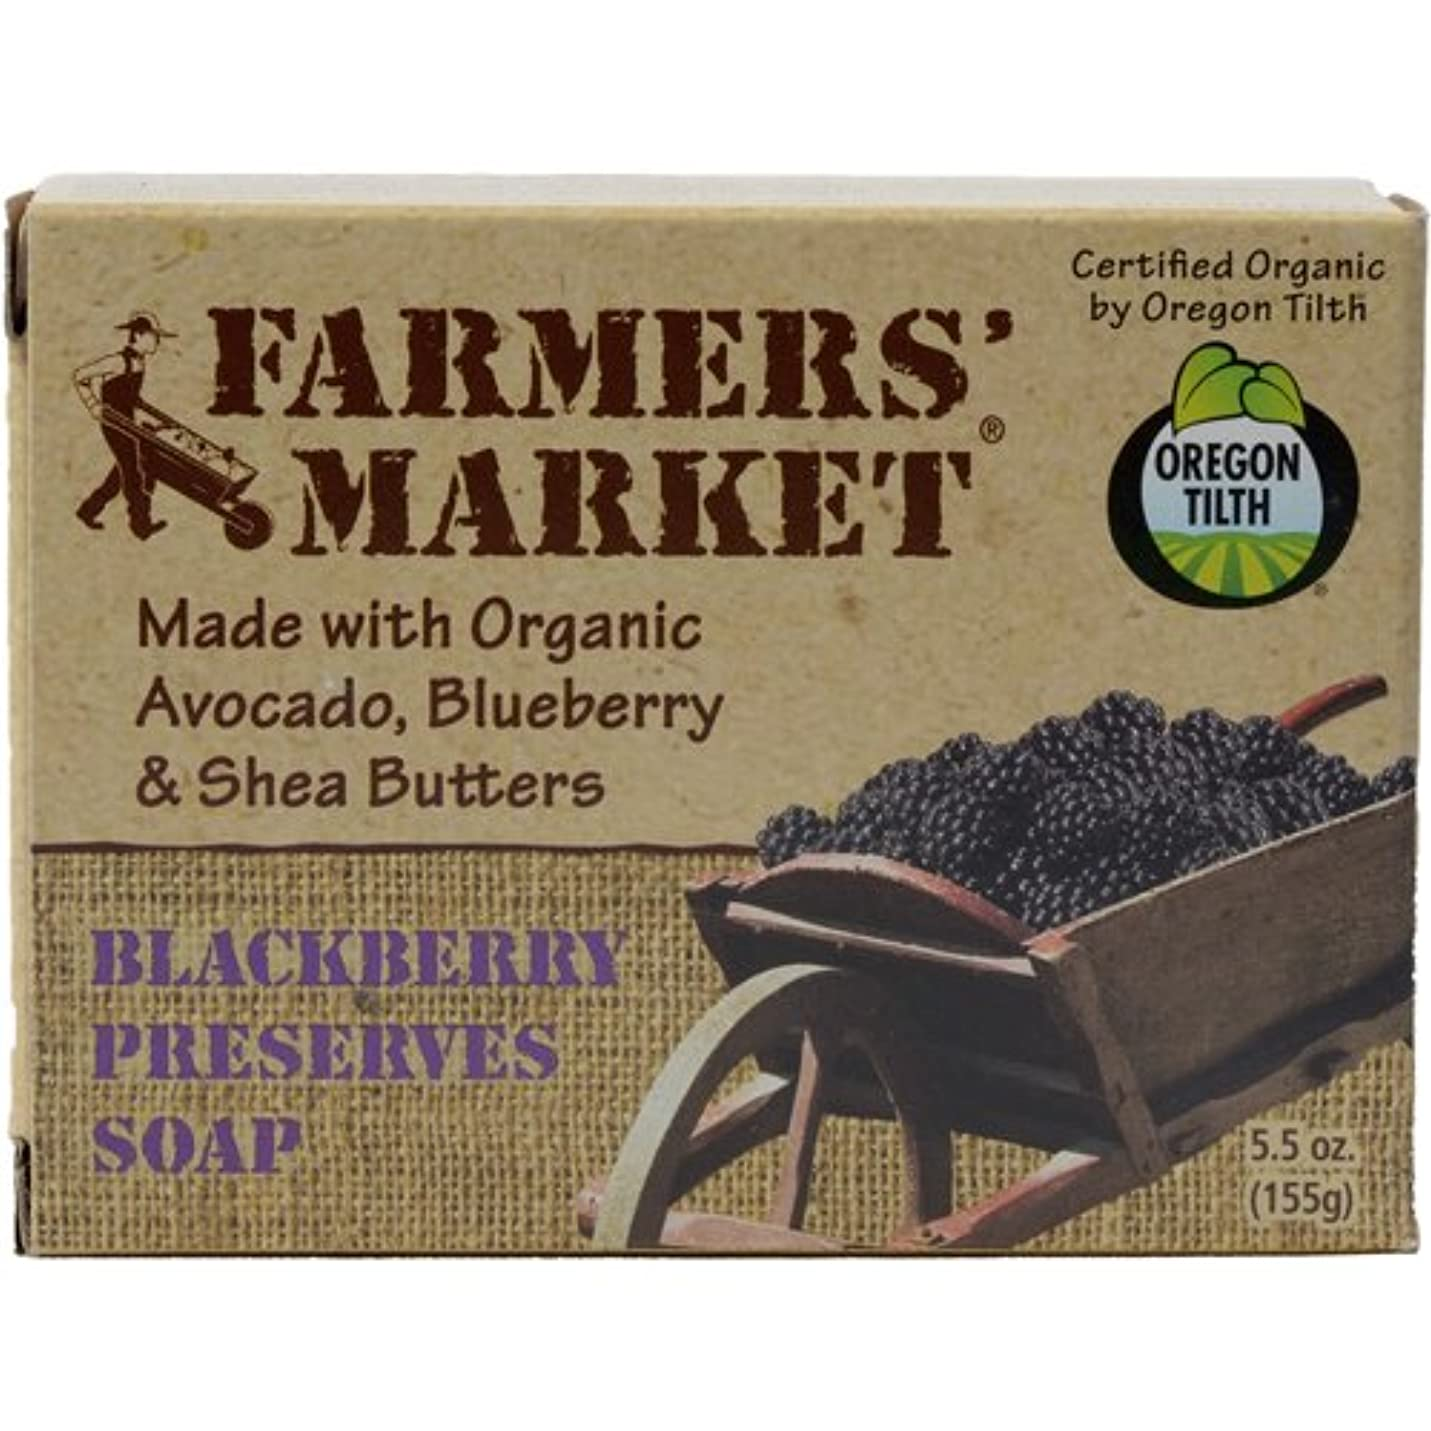 Natural Bar Soap Blackberry Preserves - 5.5 oz by Farmer's Market